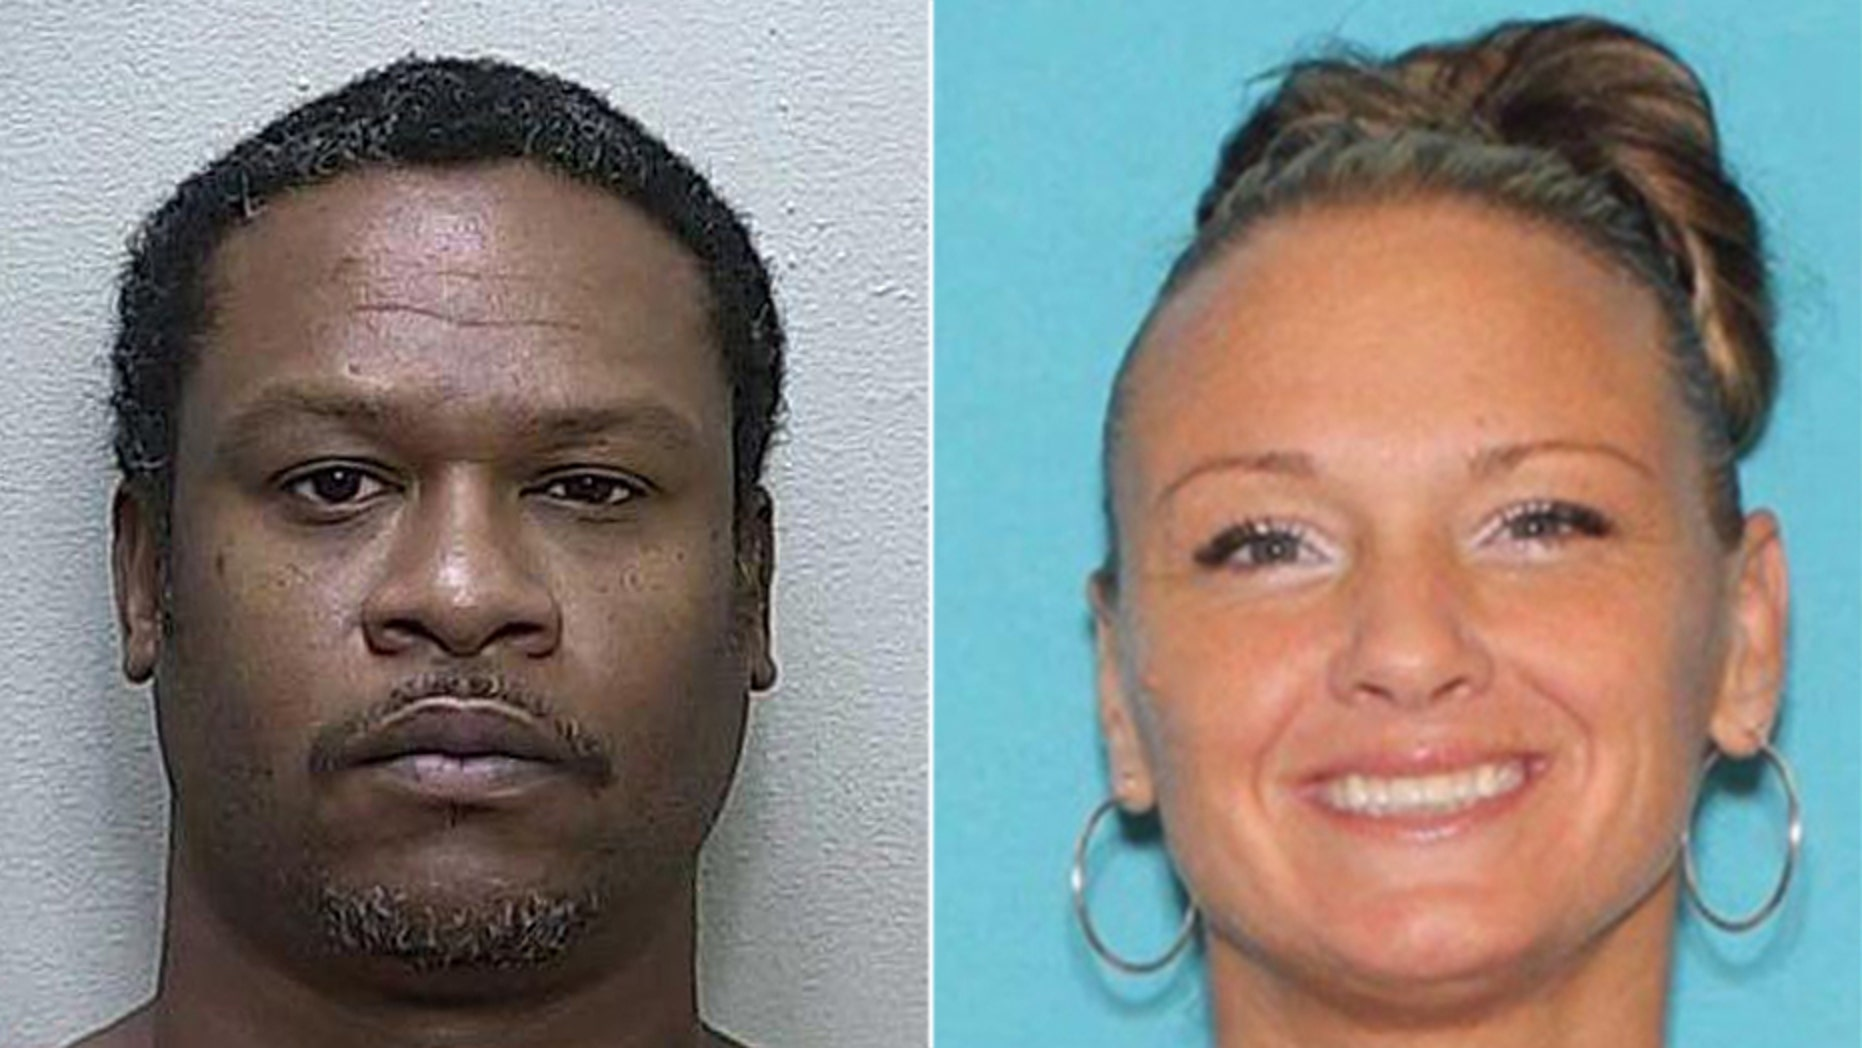 Vincent Terry, 47, was arrested Monday on second-degree murder charges in the death of his wife, Chrystal, 41.